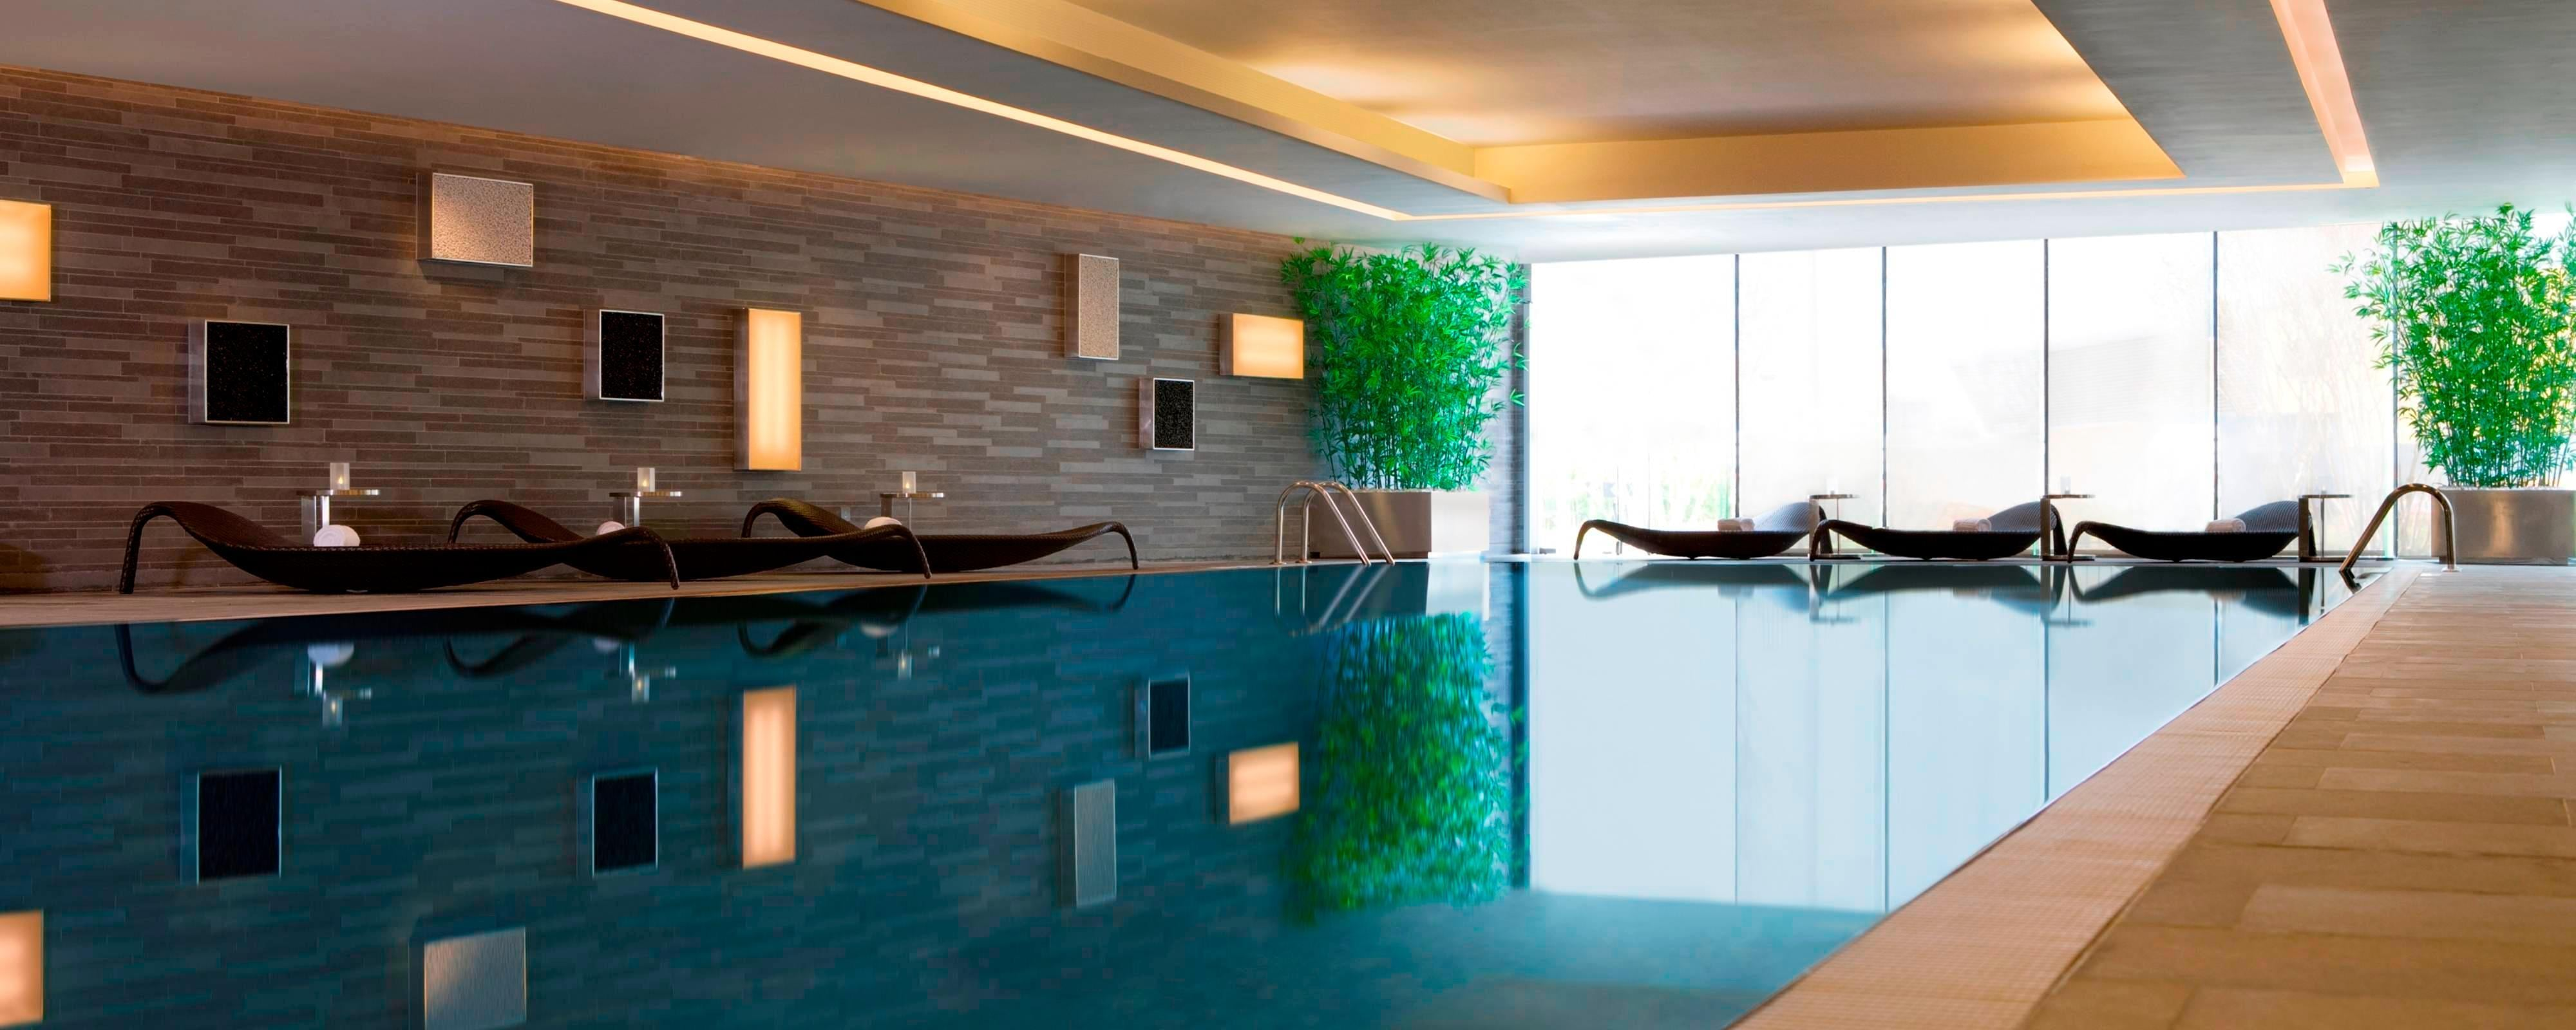 Hong Kong hotel indoor pool